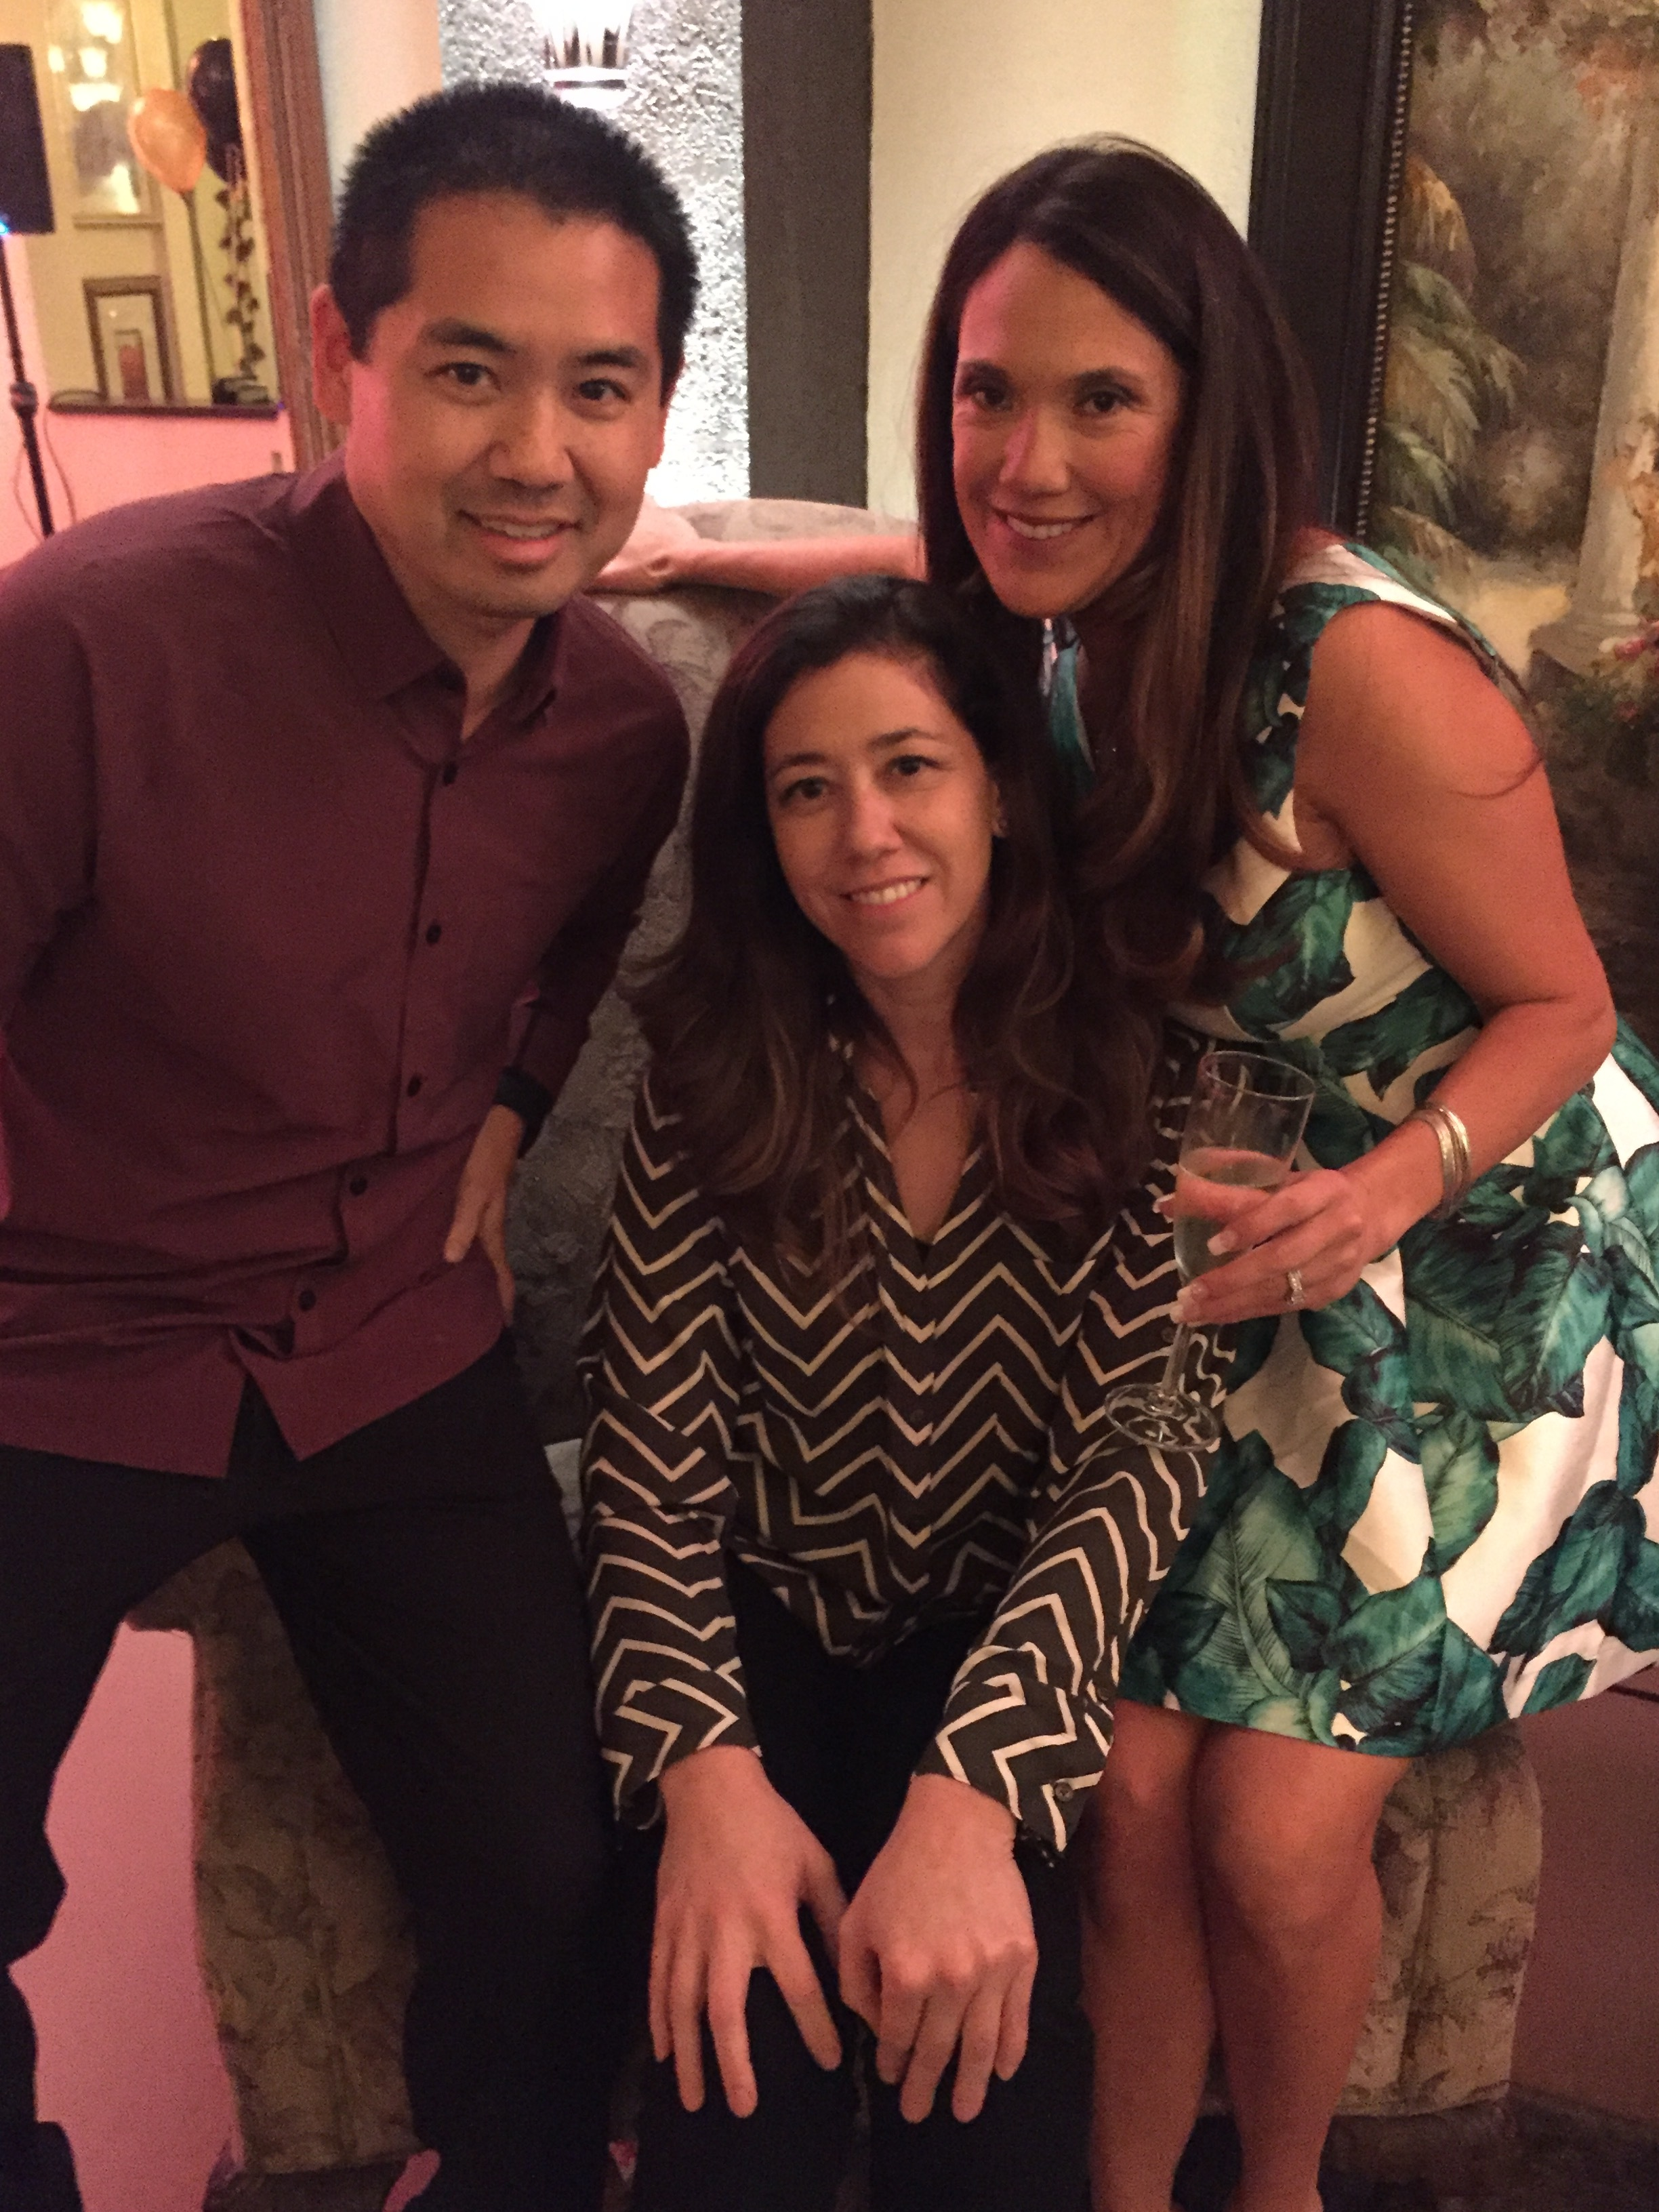 San Diego, Justin Kanoya, with party host Felicia (right) and her sister, Allison (middle).